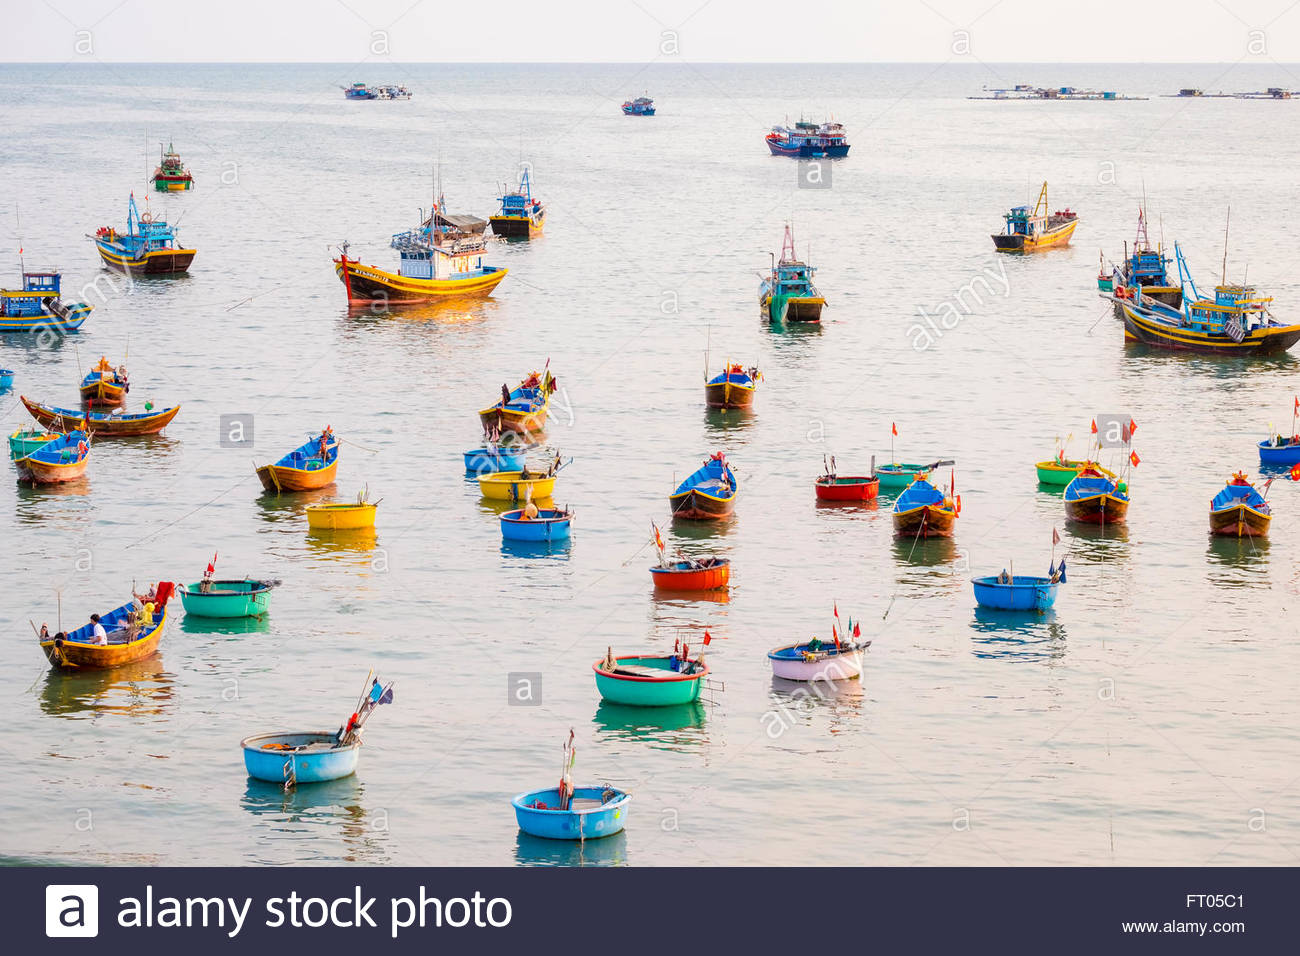 Fishing boats in harbor at Mui Ne, Phan Thiet, Binh Thuan Province, Vietnam - Stock Image